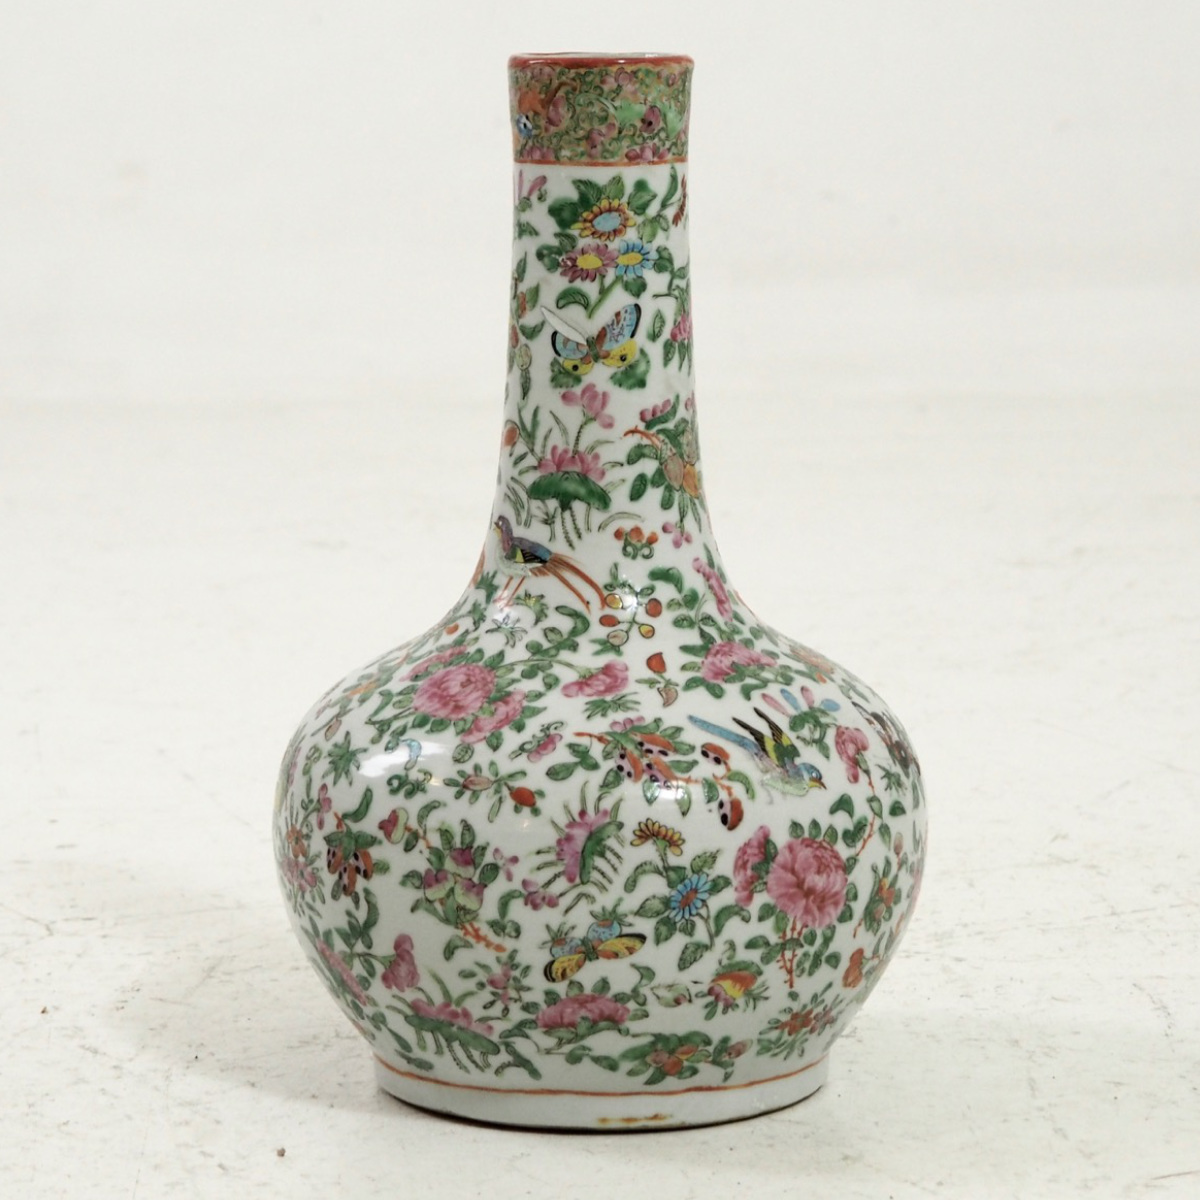 Chinese porcelain vase, 19th C. - € 1.400